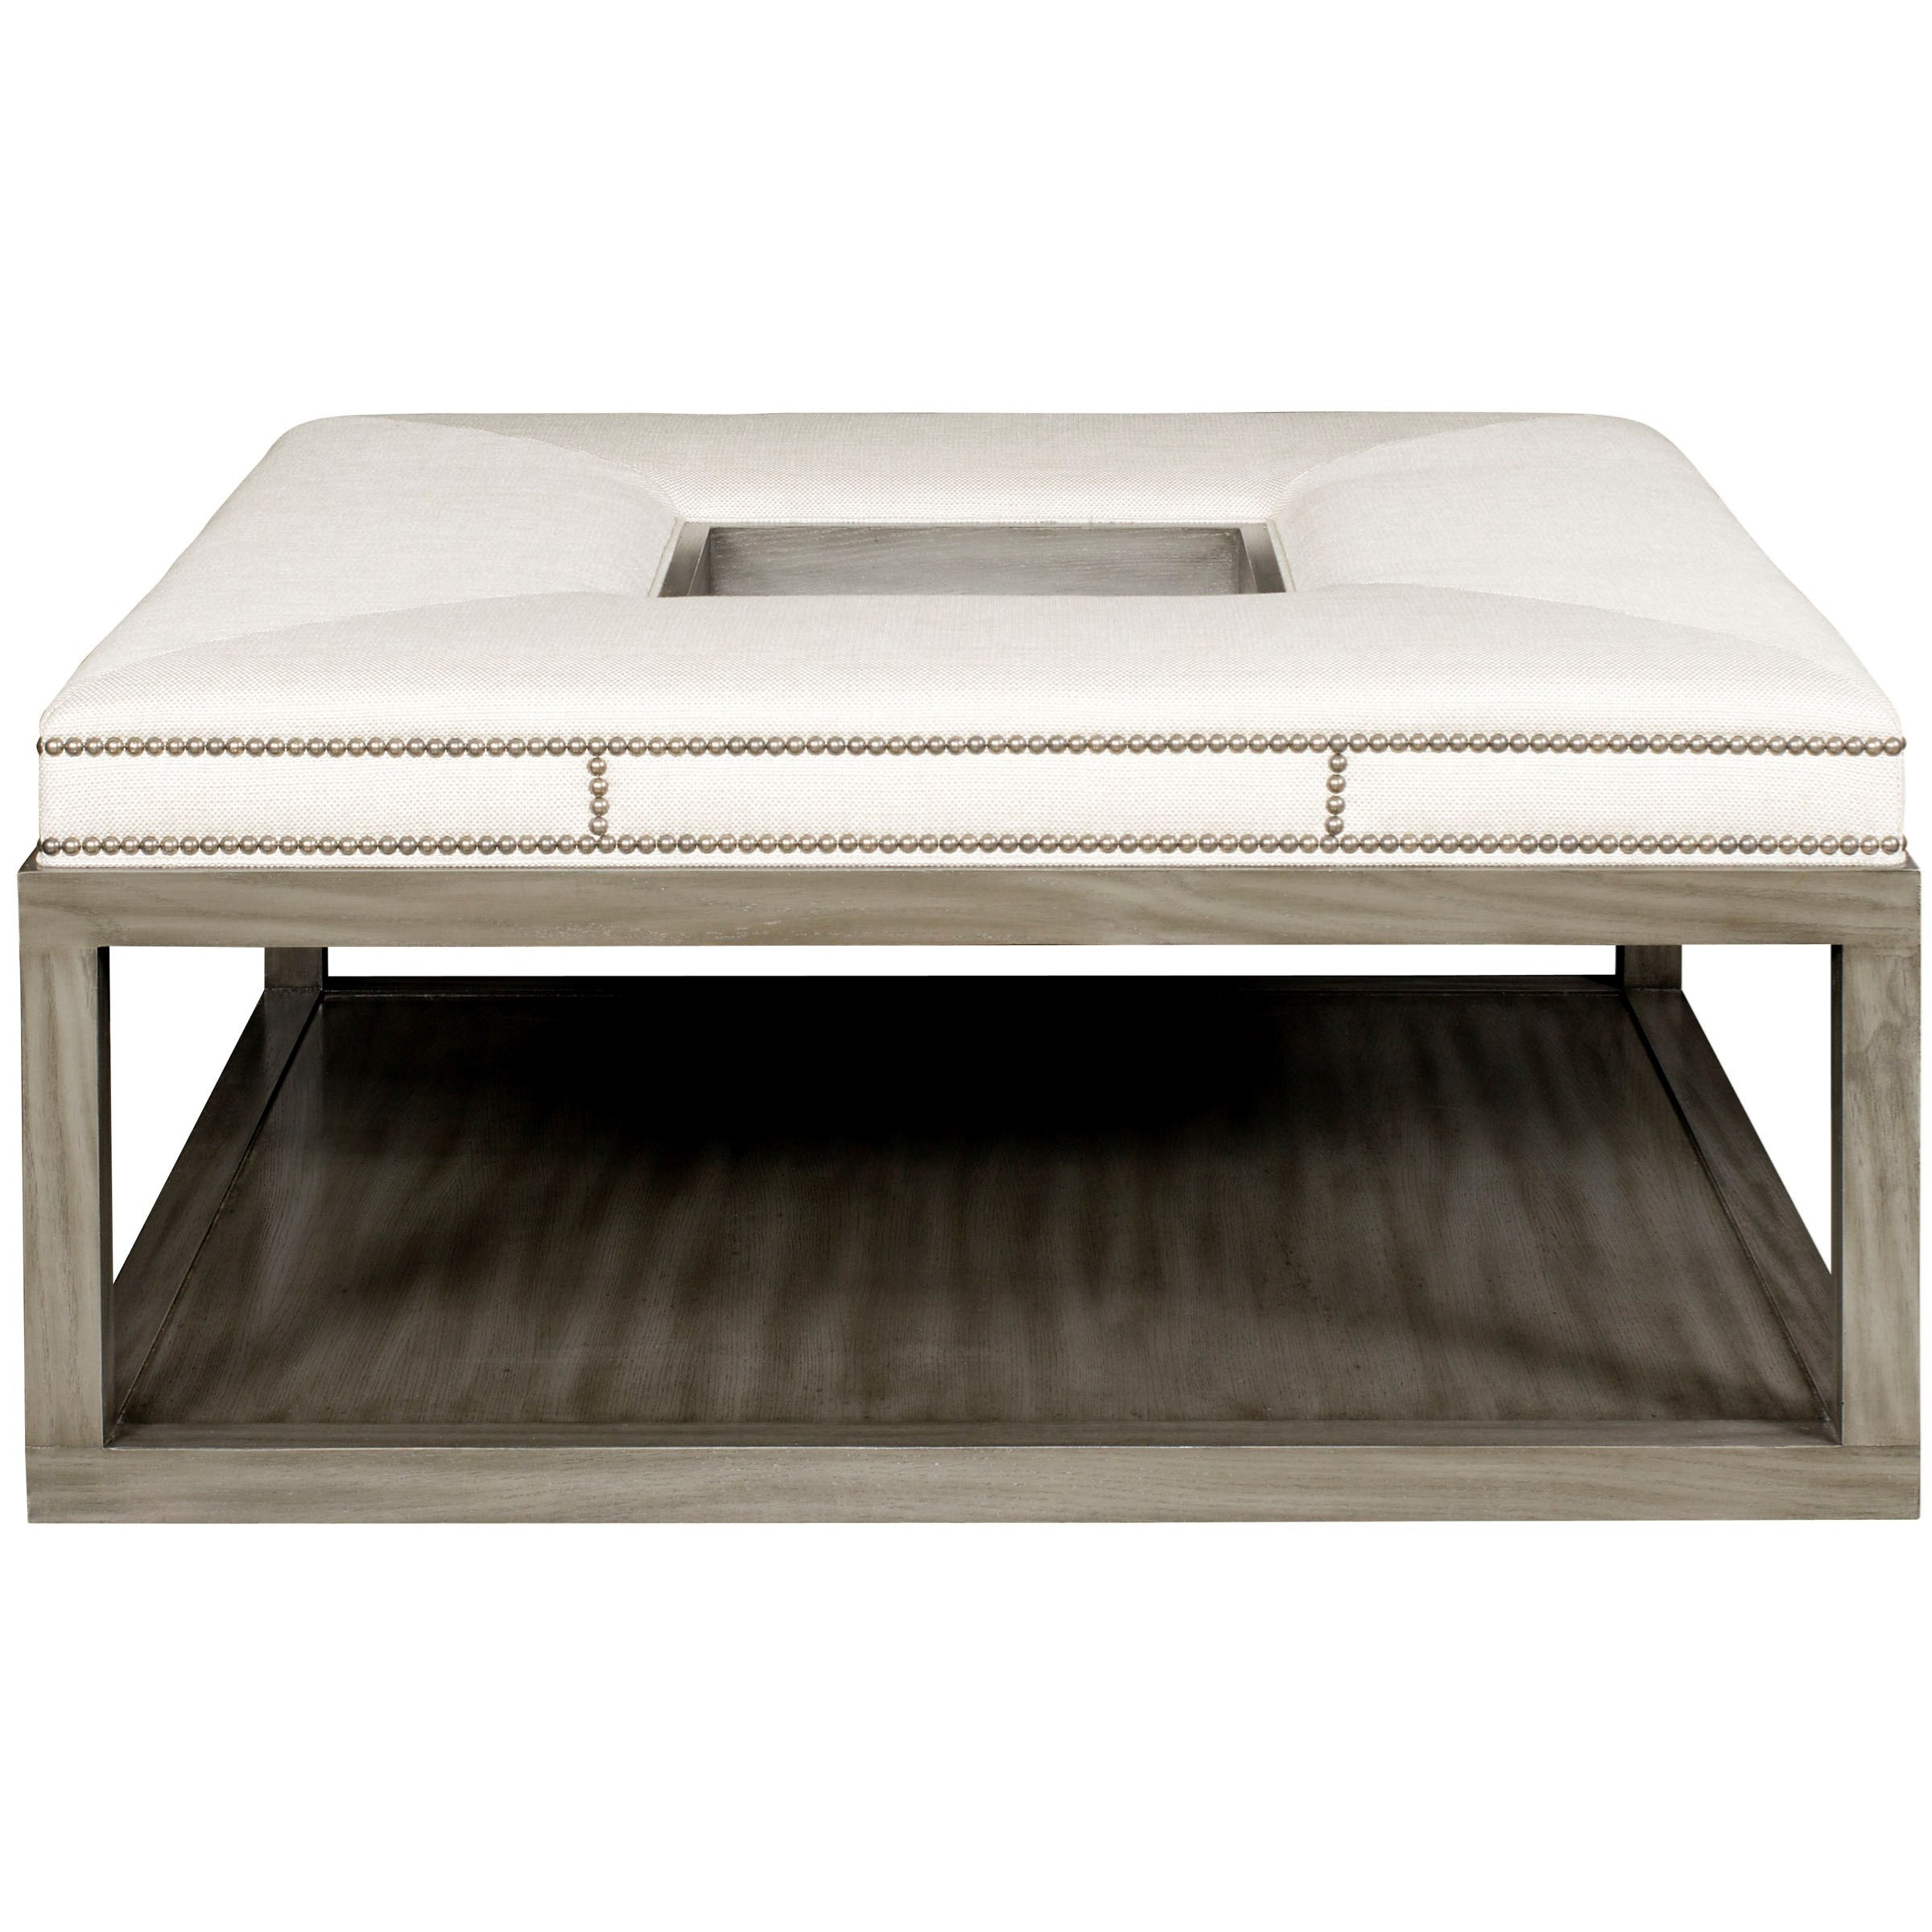 Michael Weiss Wayland Square Wood Ottoman by Vanguard Furniture at Jacksonville Furniture Mart